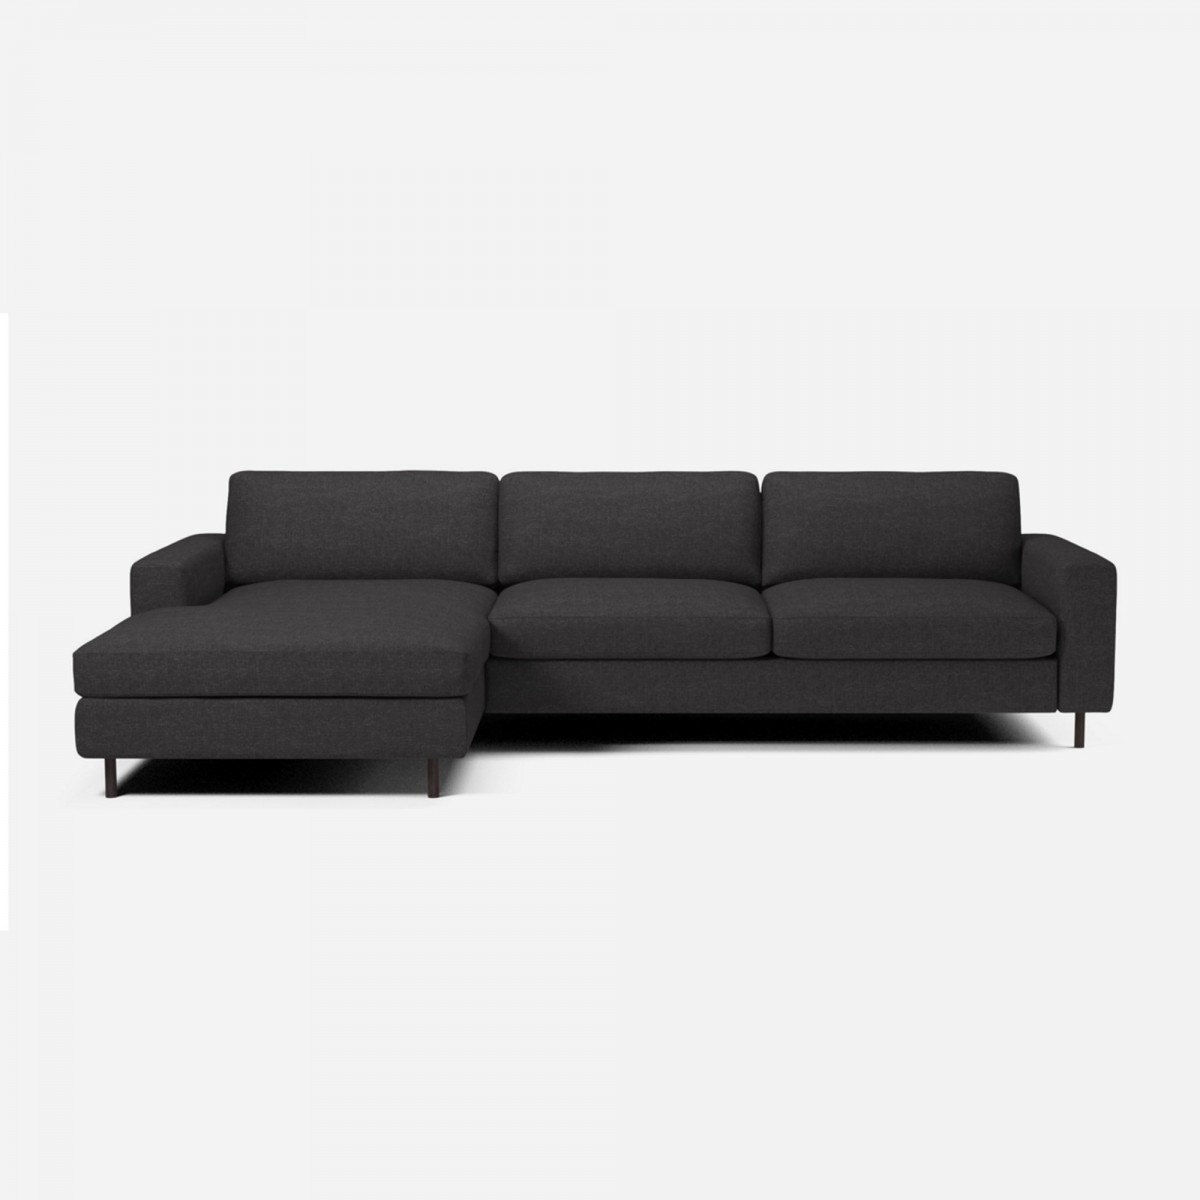 SCANDINAVIA 3½ seater sofa with chaise longue BOLIA